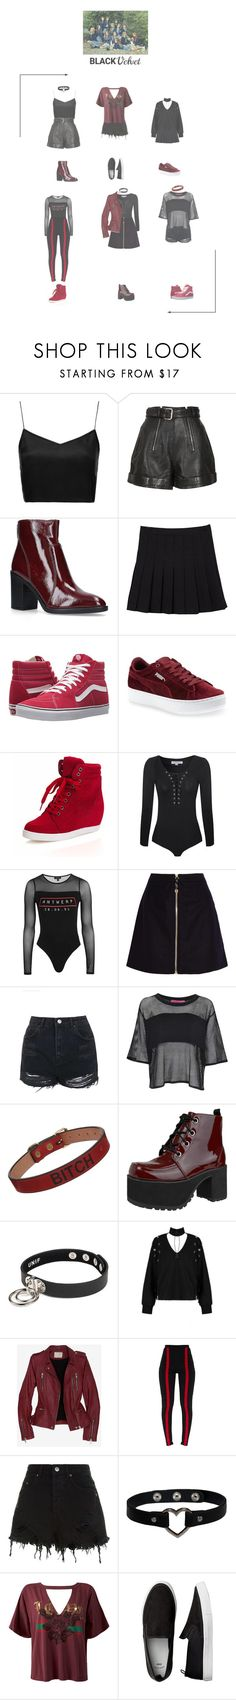 """(2/2) BlackVelvet Mercury Entertaintment audition."" by blackvelvetofficial ❤ liked on Polyvore featuring Boutique, Carven, Kurt Geiger, Vans, Puma, Glamorous, Topshop, Acne Studios, Boohoo and Saddlers Union"